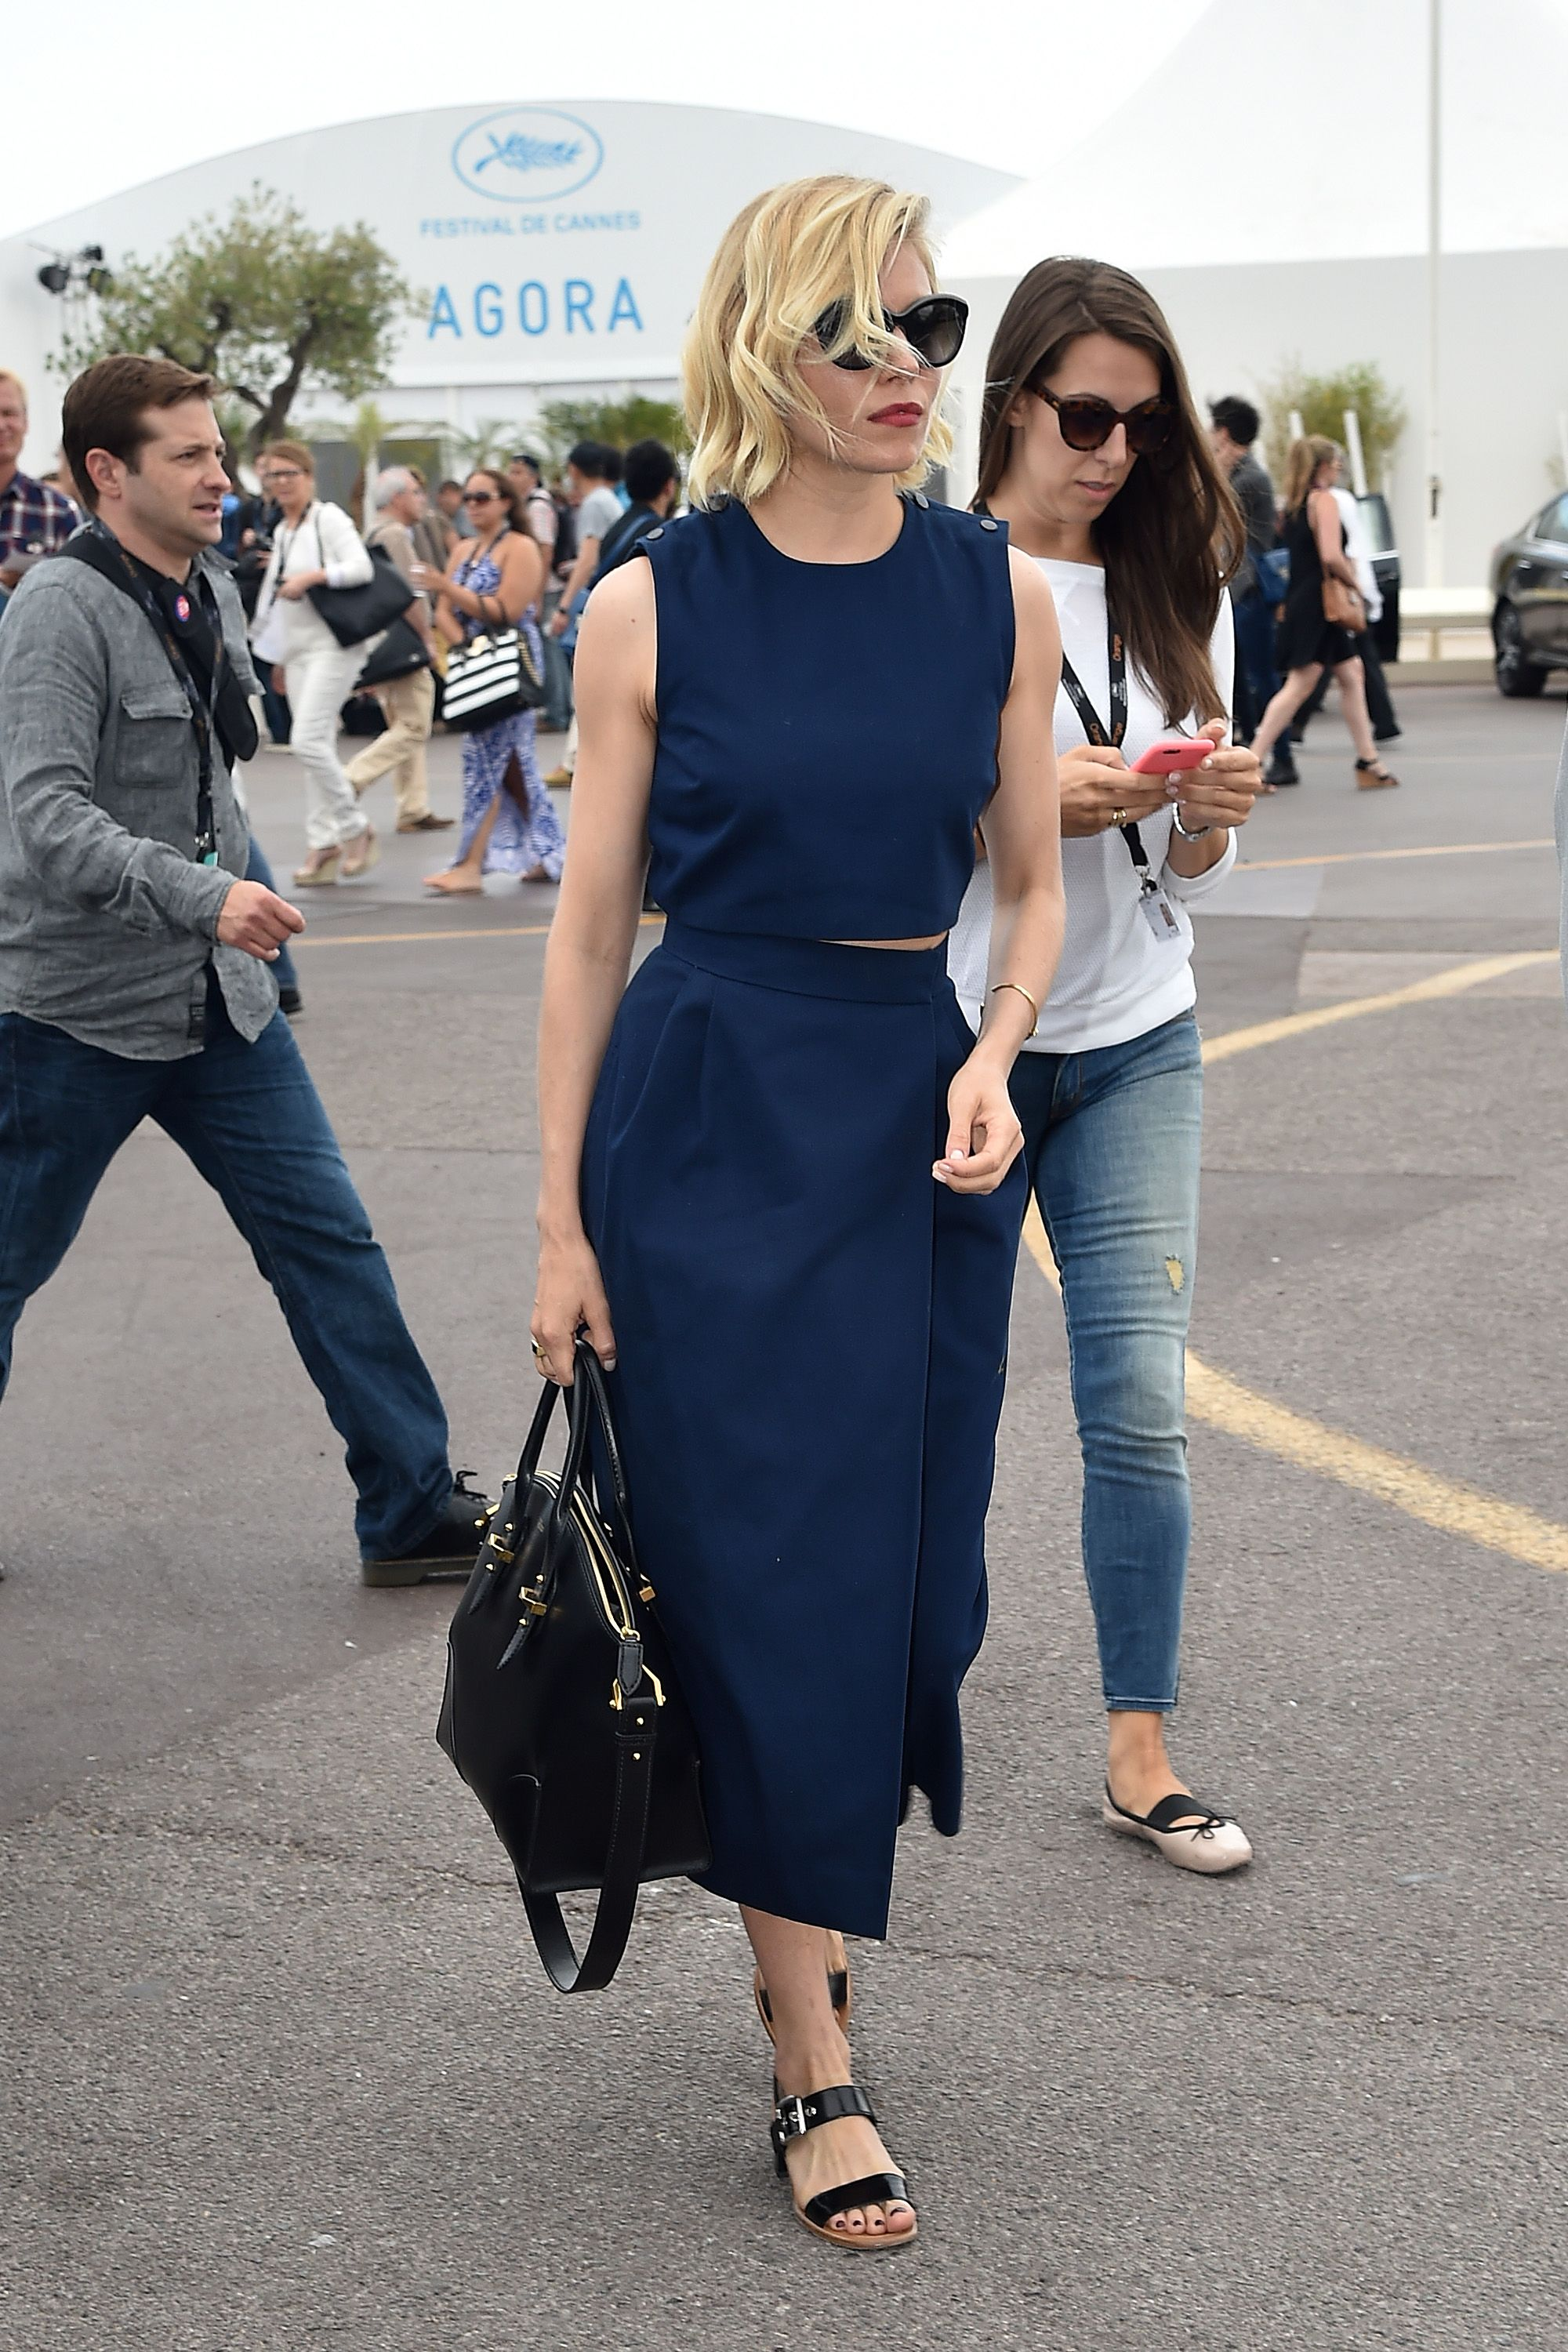 Sienna Miller A classic navy sheath, comfy sandals, and a red lip are the key to nailing your holiday style: it's comfortable and still pulled together.